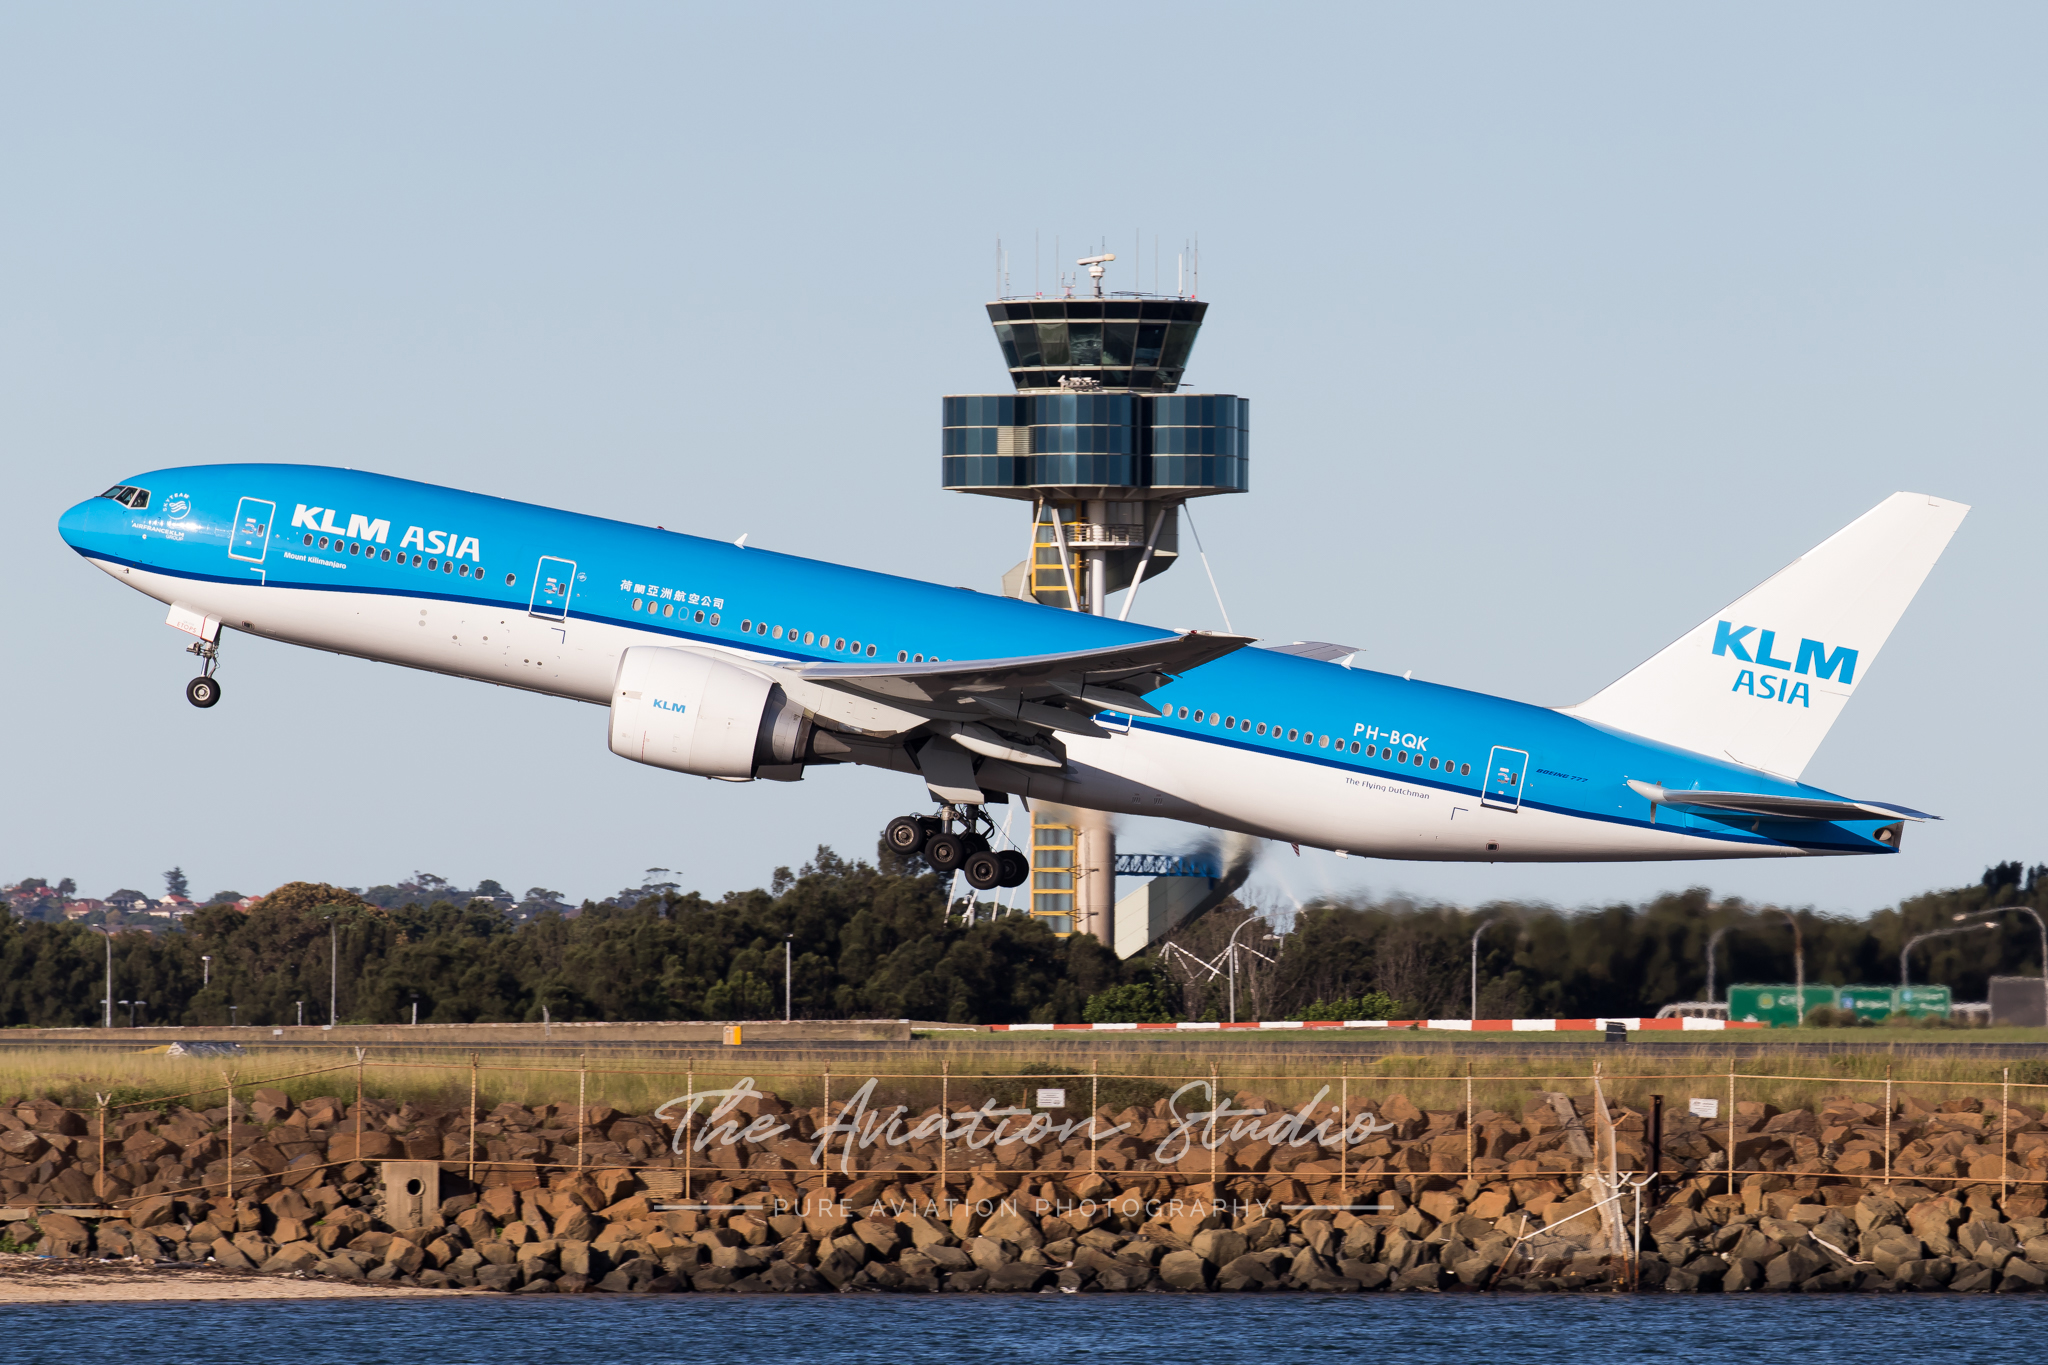 KLM Boeing 777-200ER PH-BQK taking off from Sydney bound for Kuala Lumpur (Image: Rory Delaney)